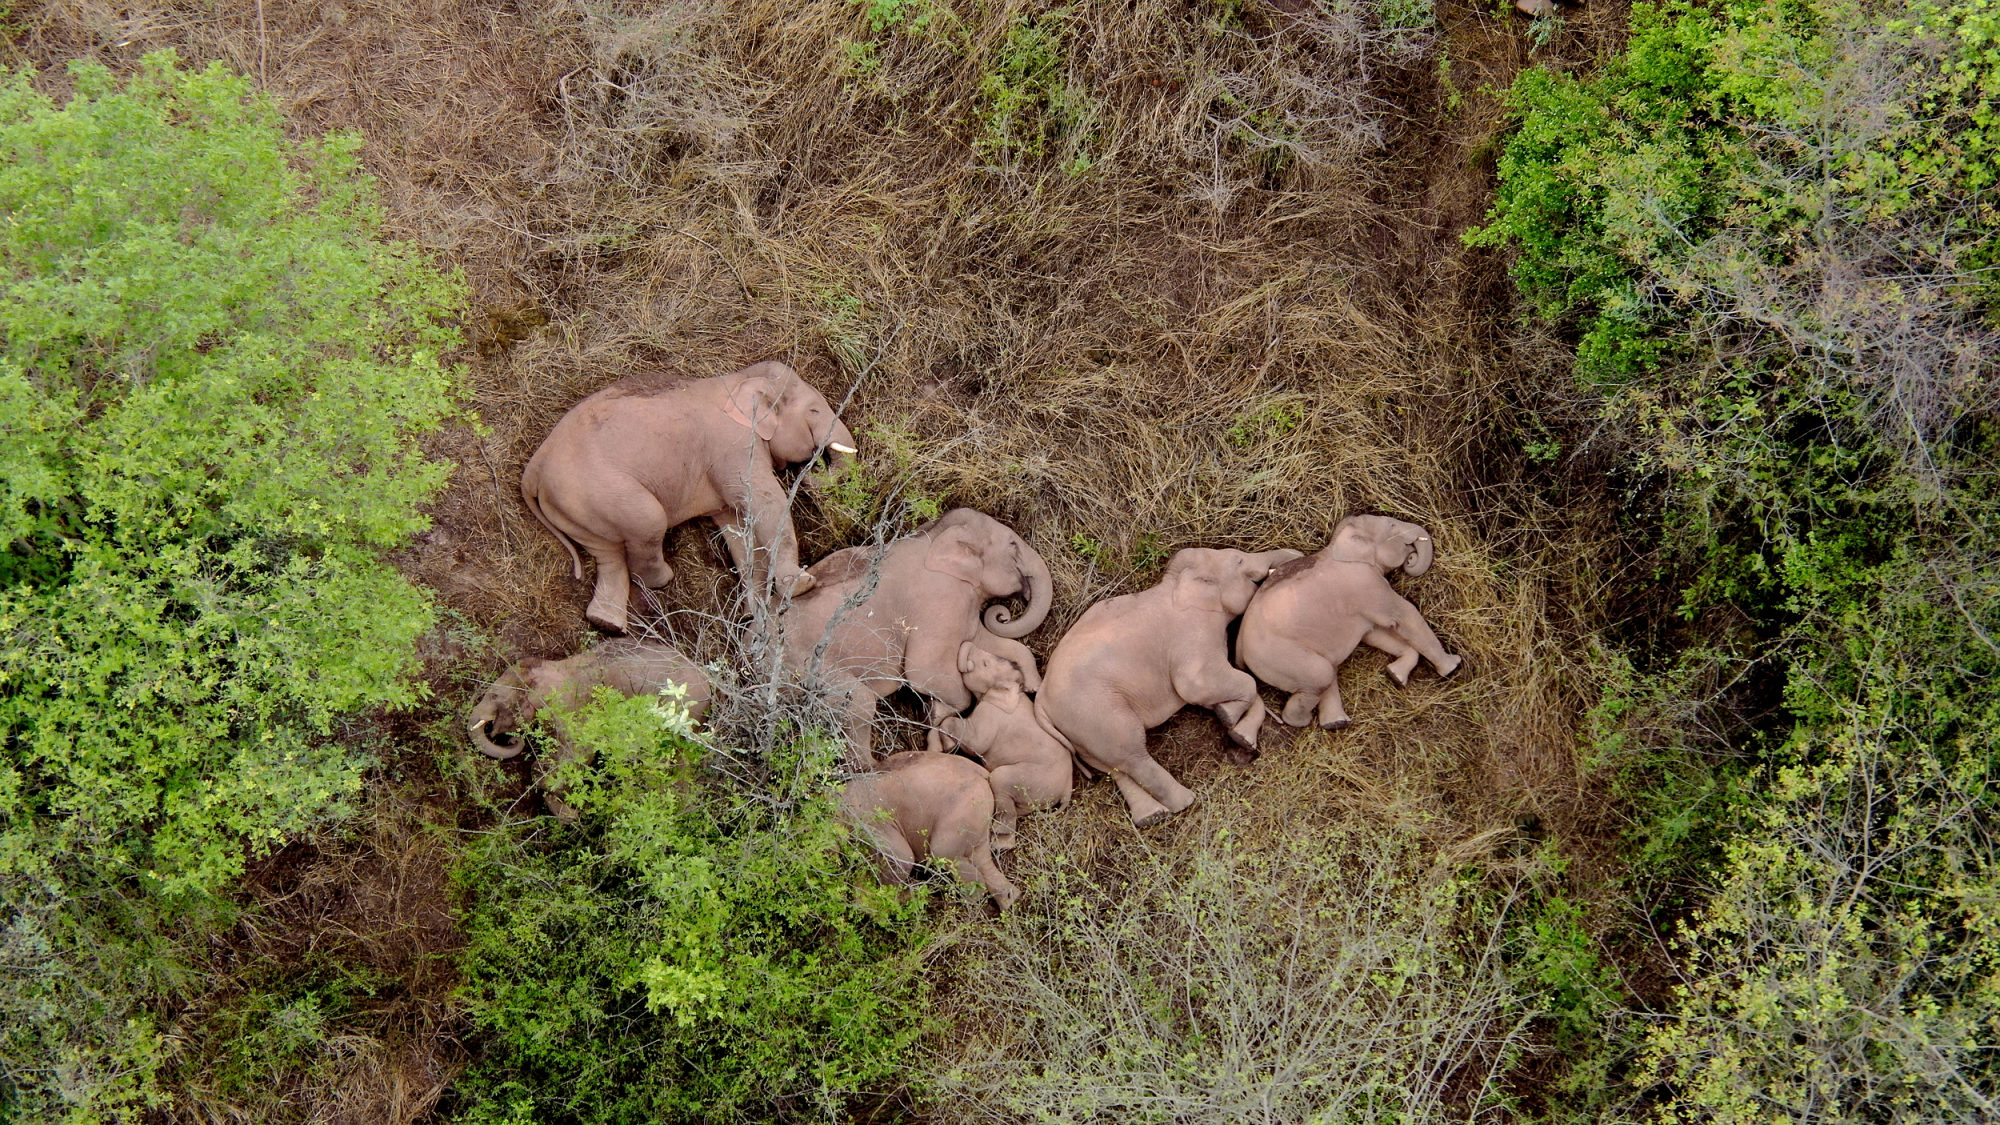 Elephants roaming in Chinese cities and provinces